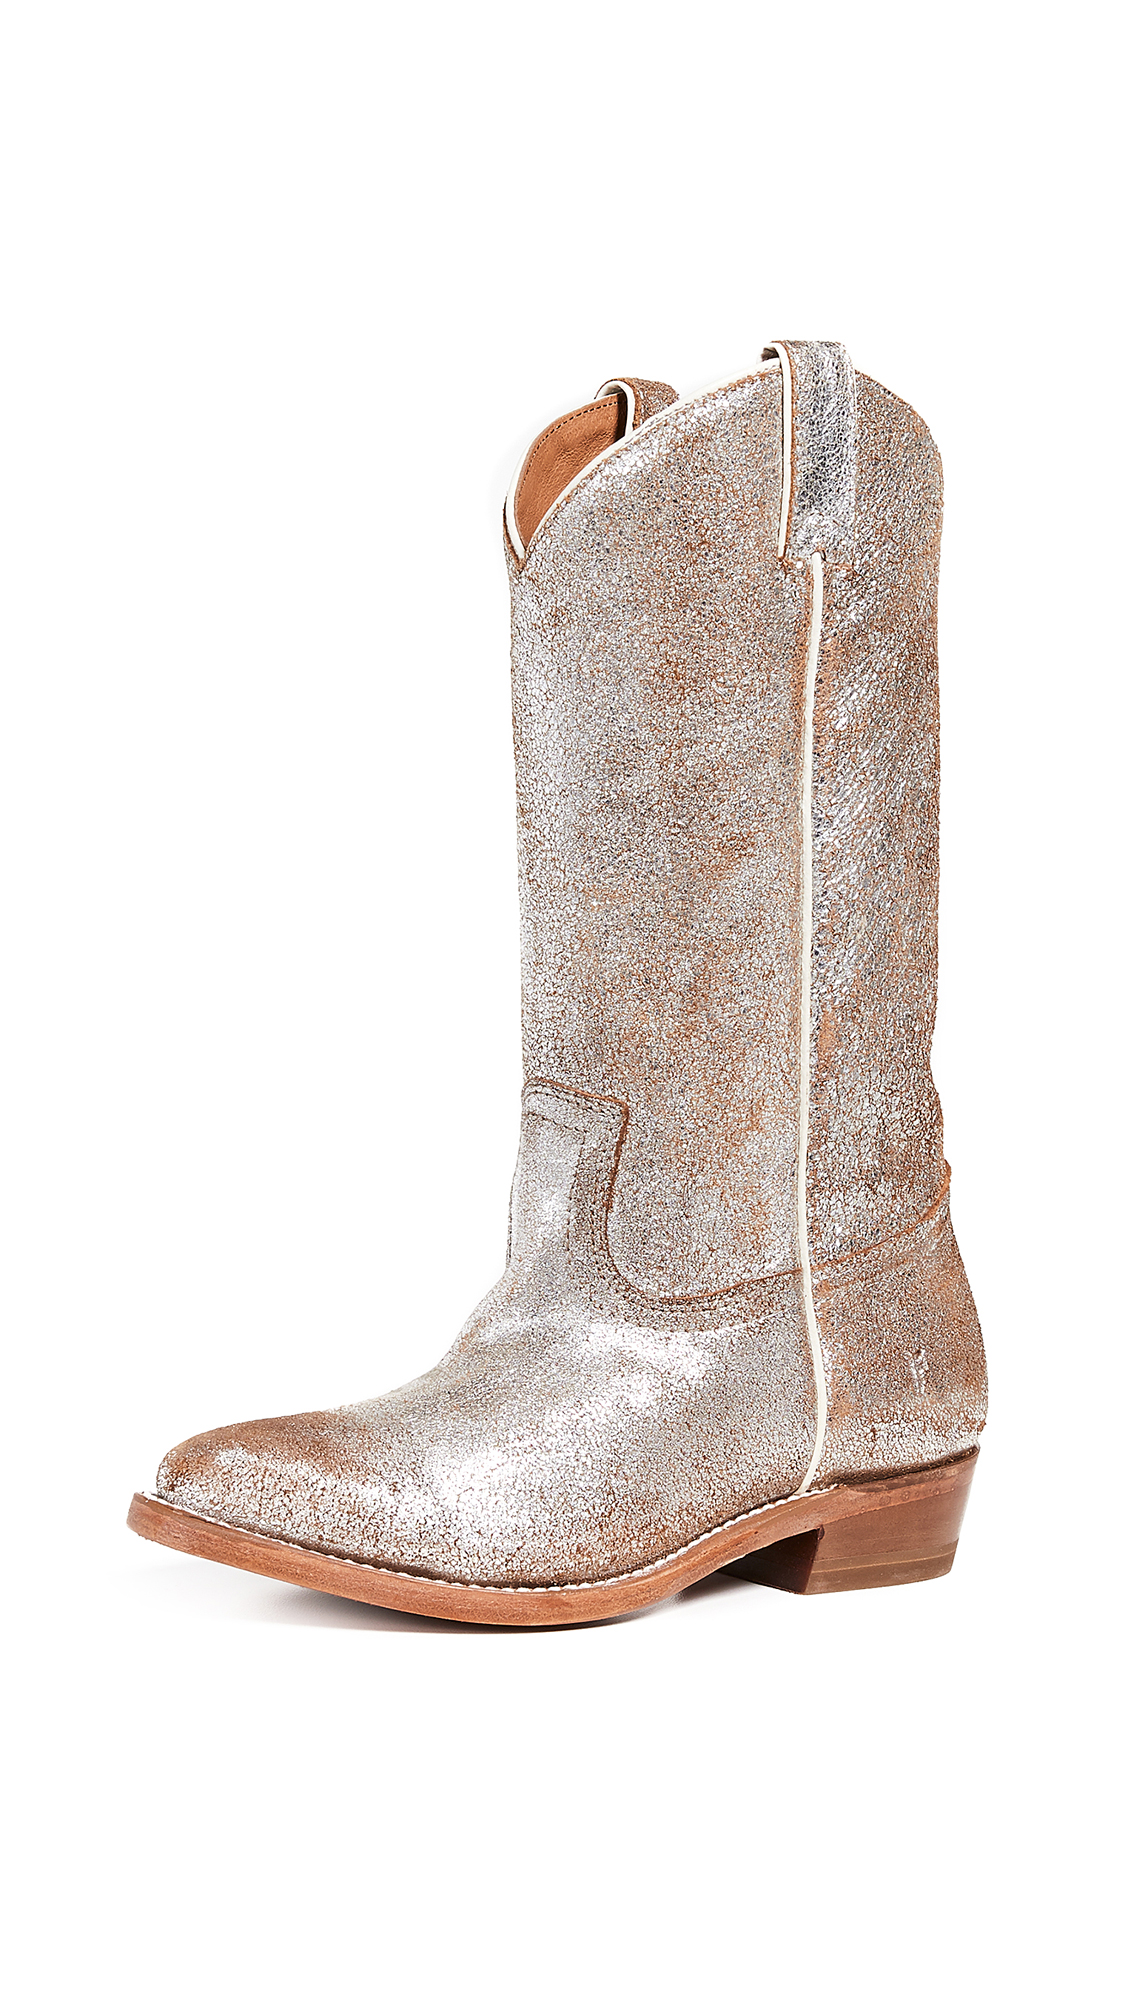 Frye Billy Pull On Boots - Silver Multi